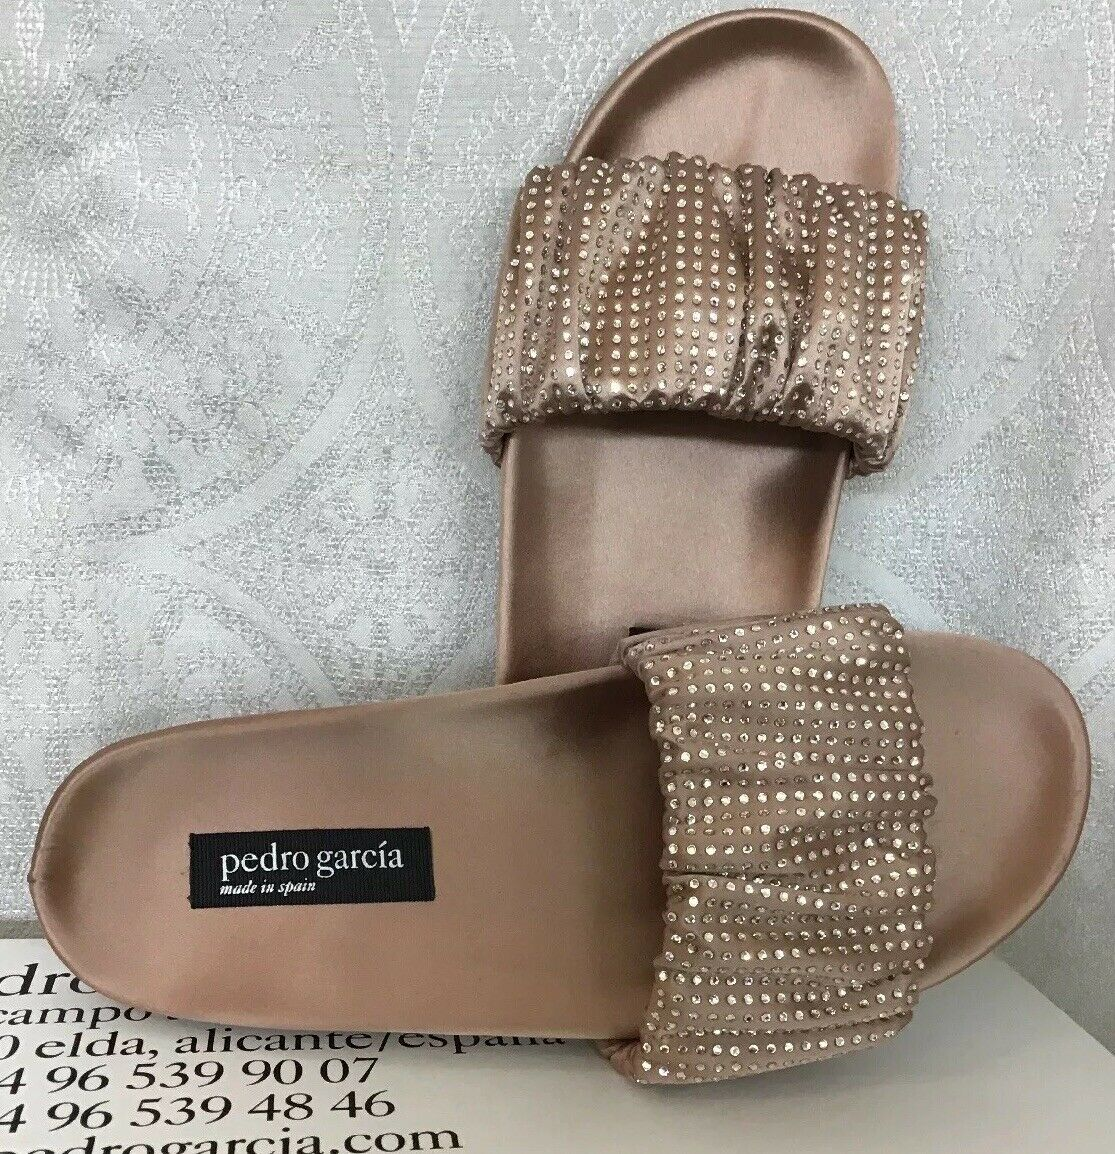 Pedro Garcia Adana shoes Bisque Satin Rhinestones Slide NWB Size 36 1 2  695